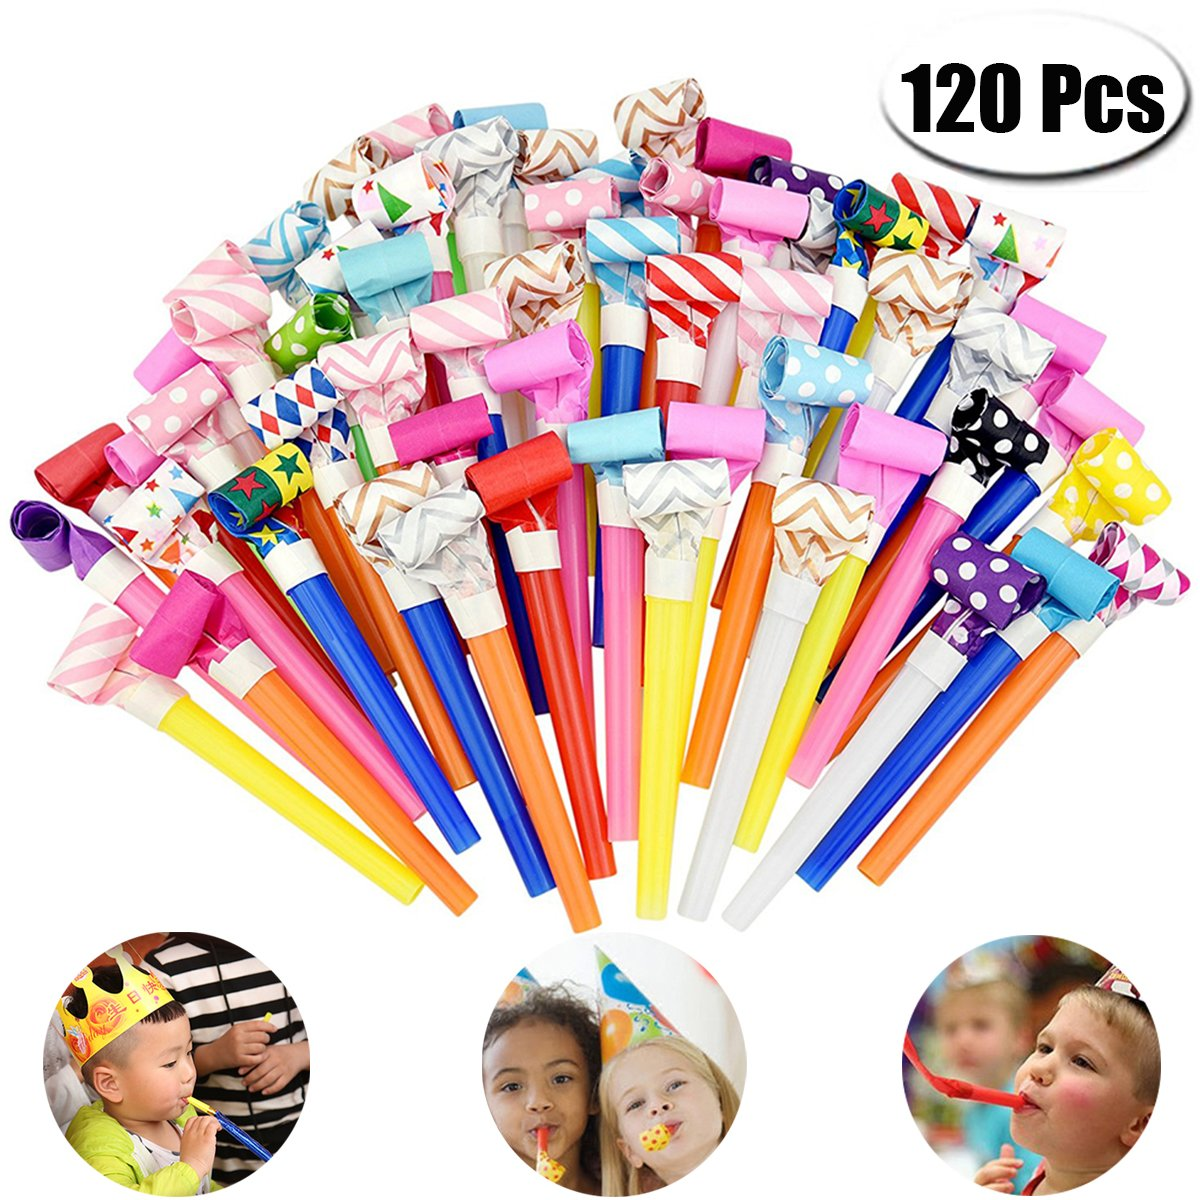 PartyYeah 120 Pcs 4.3Inch Funny Party Blowouts Blowers-Noisemakers Whistles for New Year Party Birthday, Random Colors Multicolored Funny Party Supplies